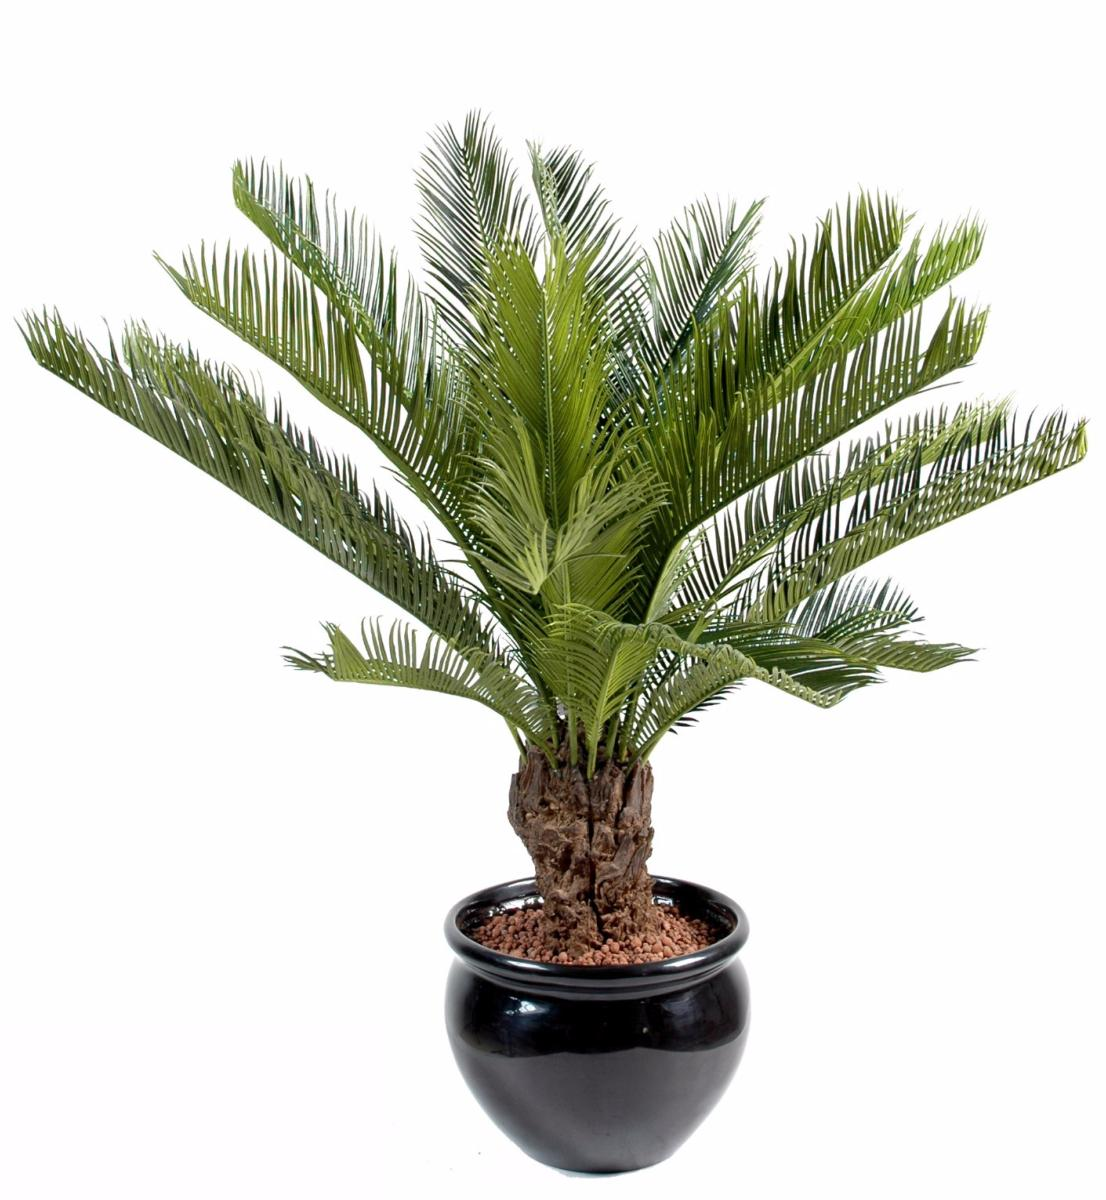 Palmier artificiel cycas tronc plante int rieur for Palmier artificiel interieur